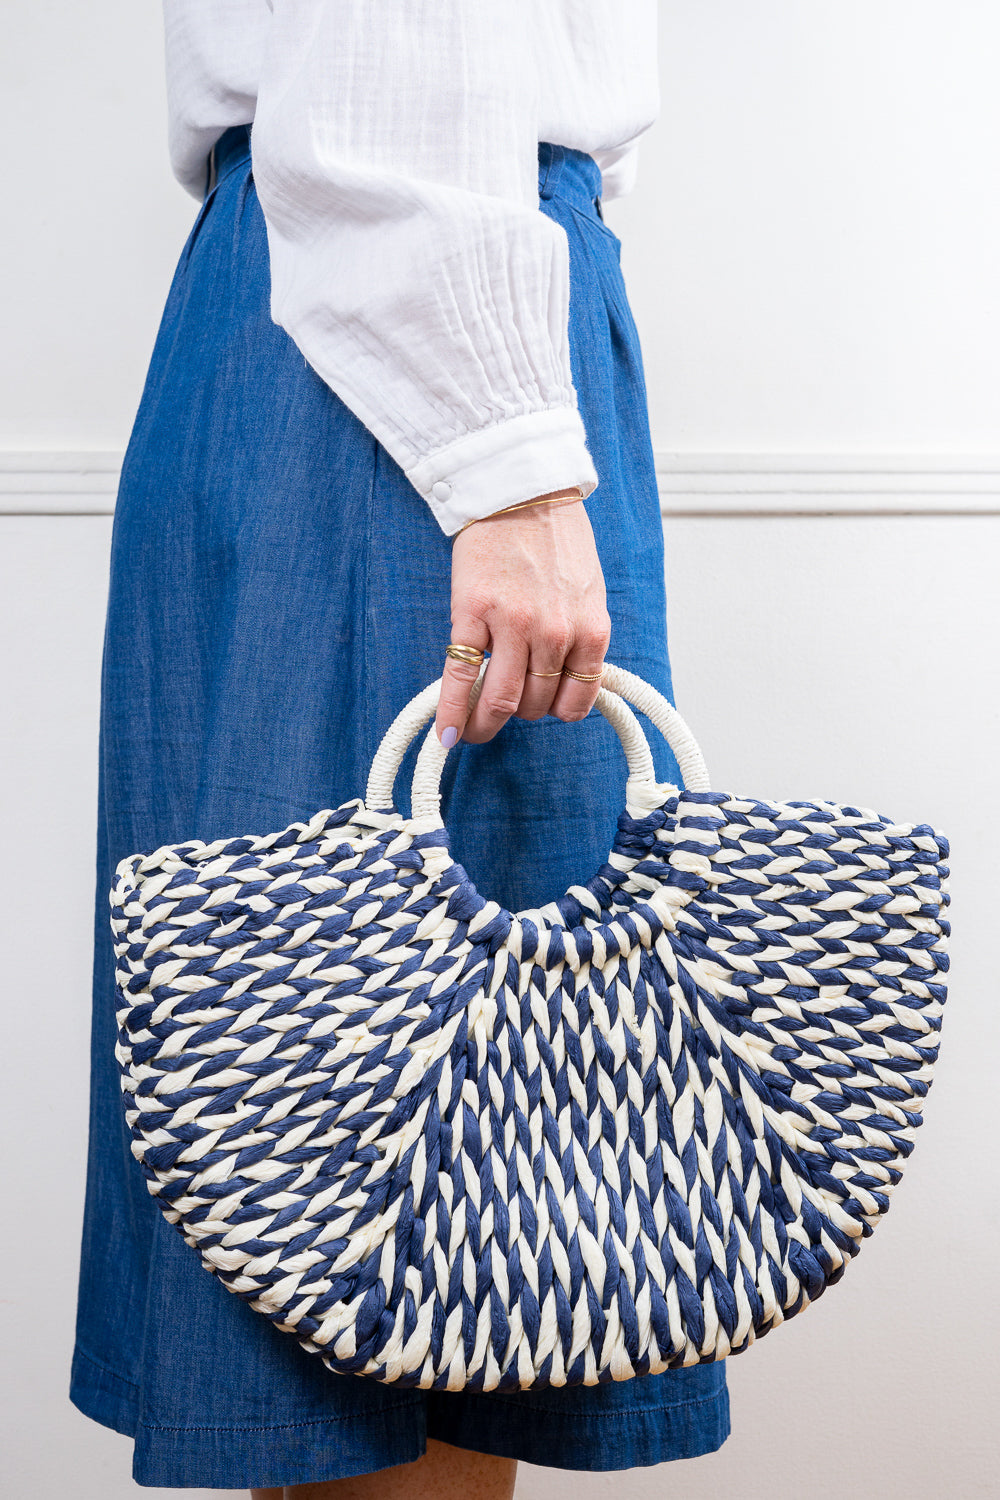 navy and white raffia straw tote hand bag held in hand Janna Conner